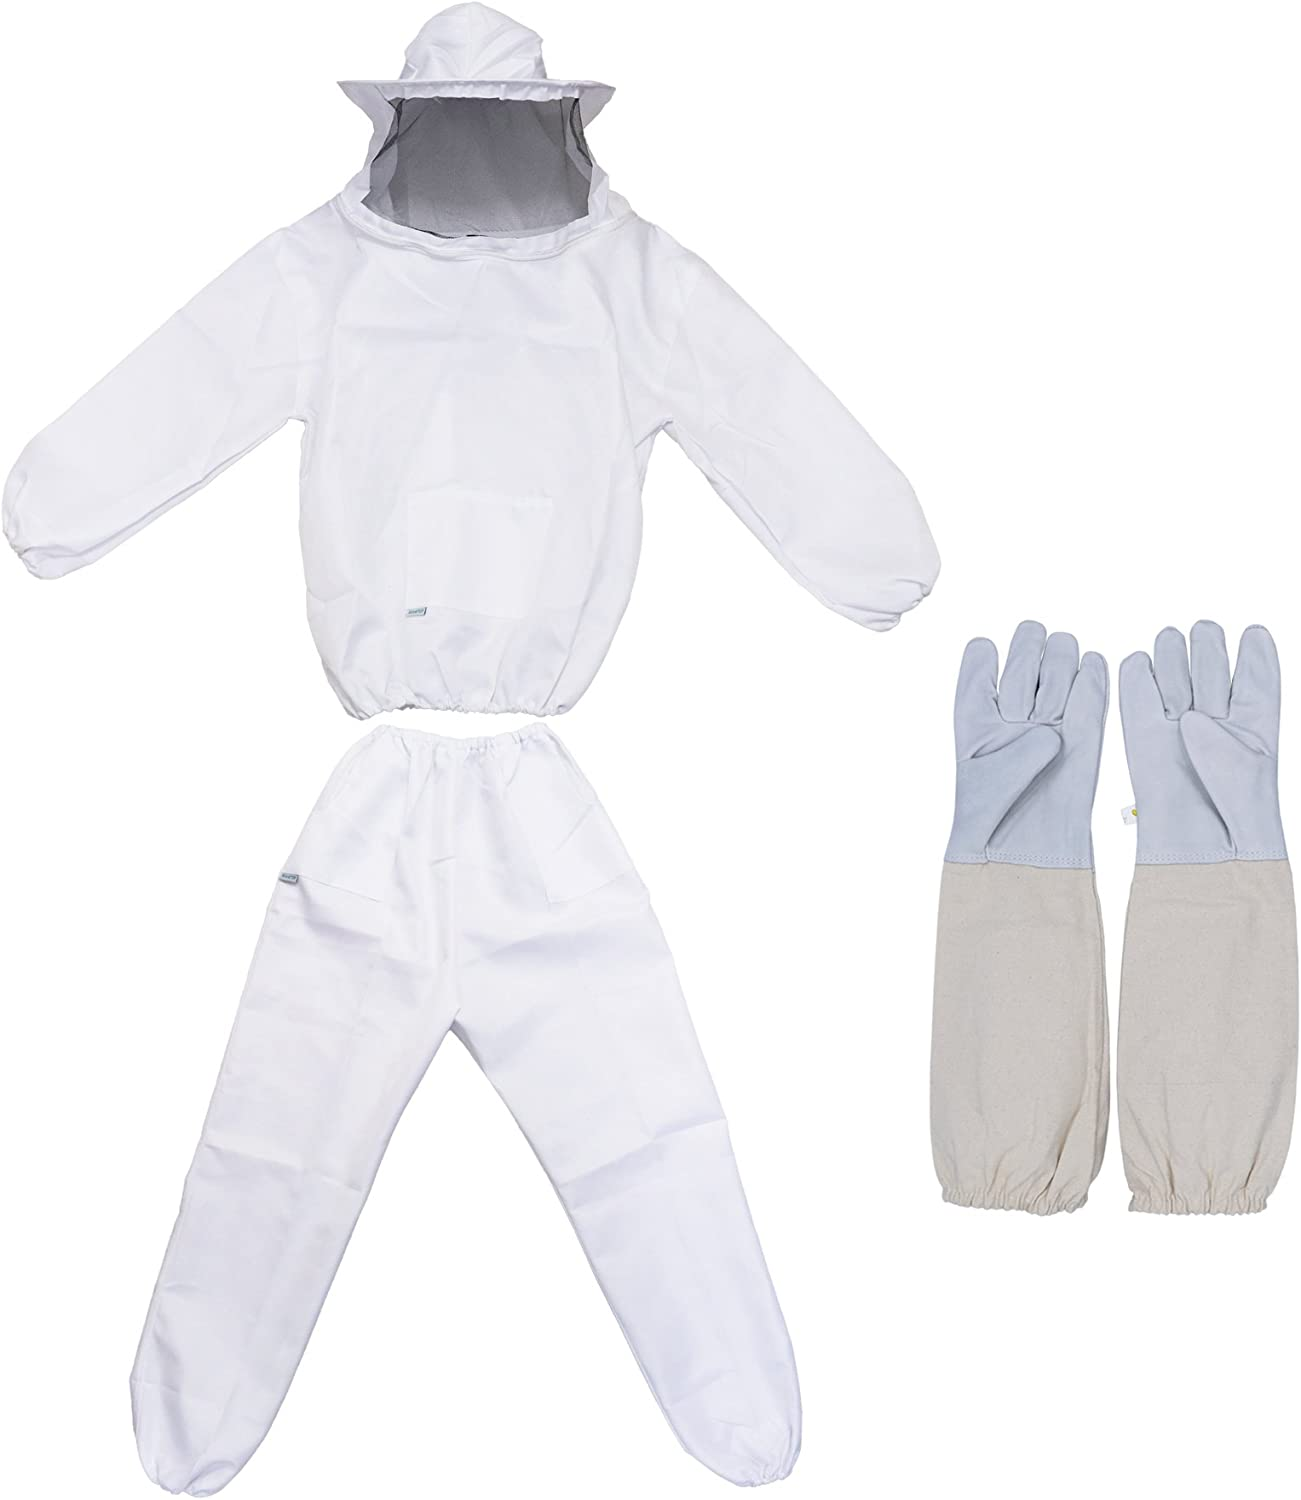 REAMTOP Professional Beekeeper Suit with Jacket, Pants, and Gloves